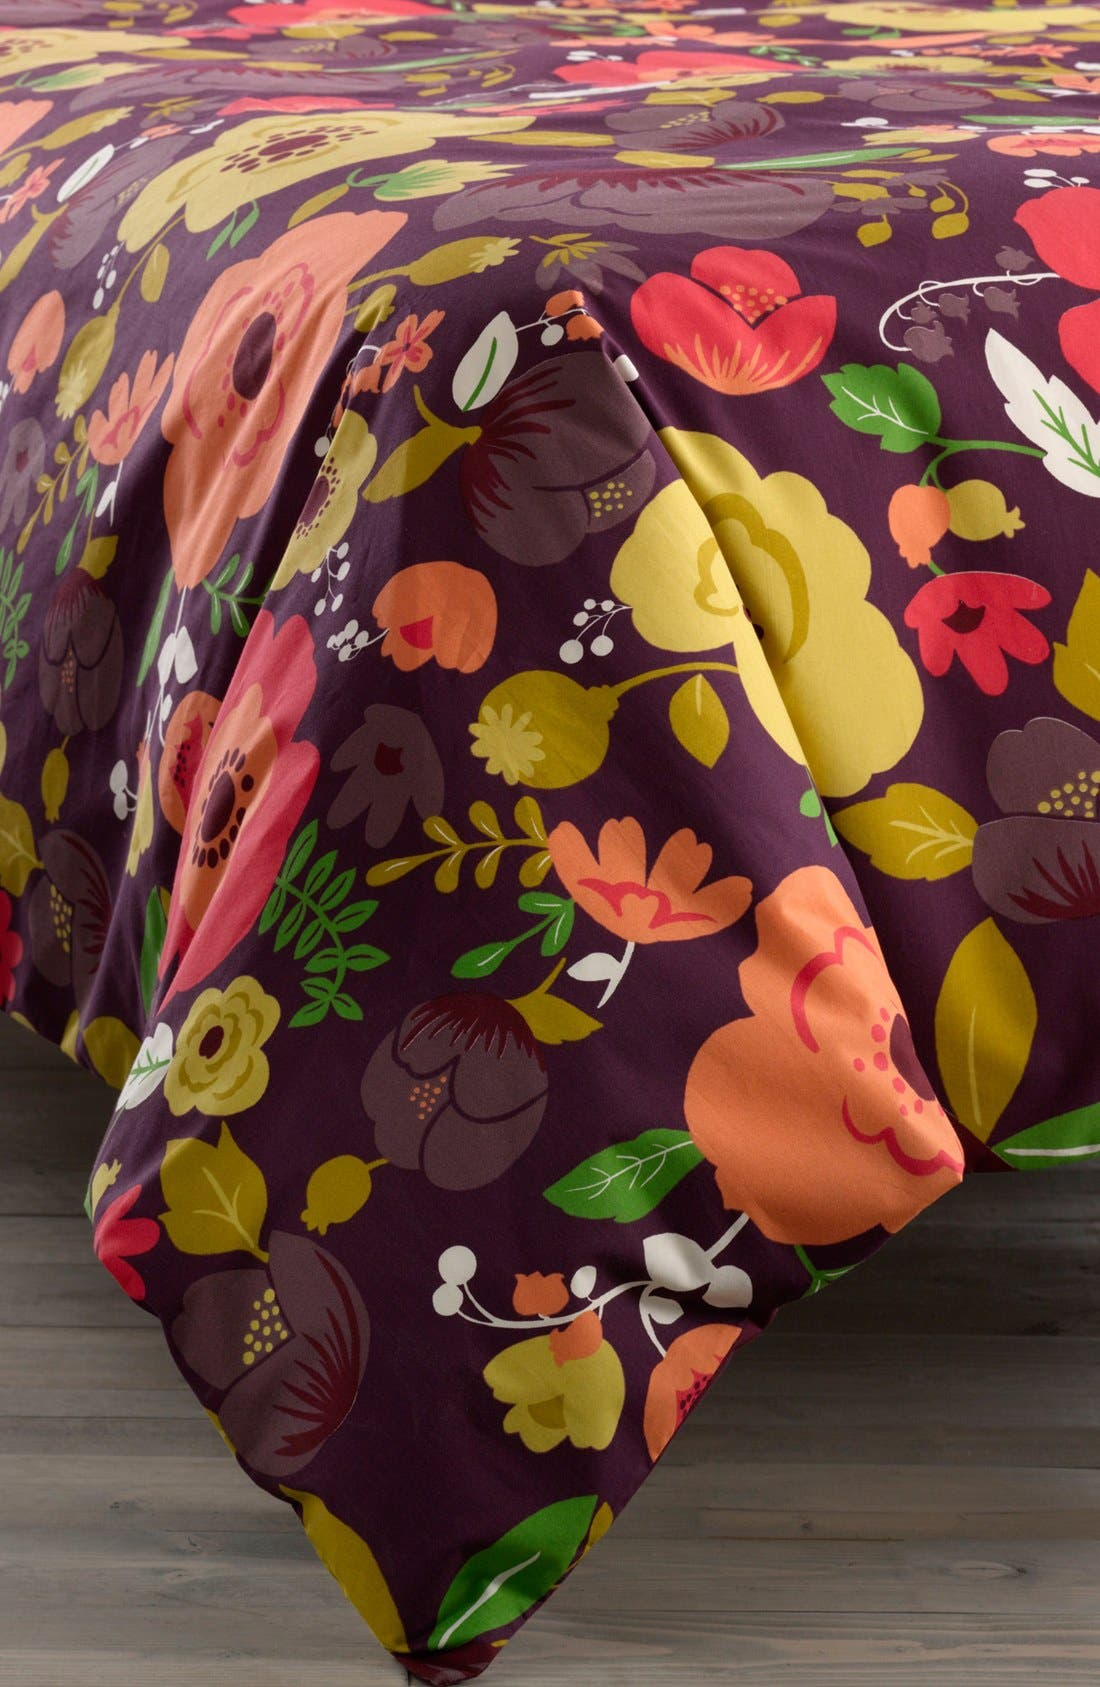 Alternate Image 1 Selected - Nordstrom at Home 'Poppy' Duvet Cover